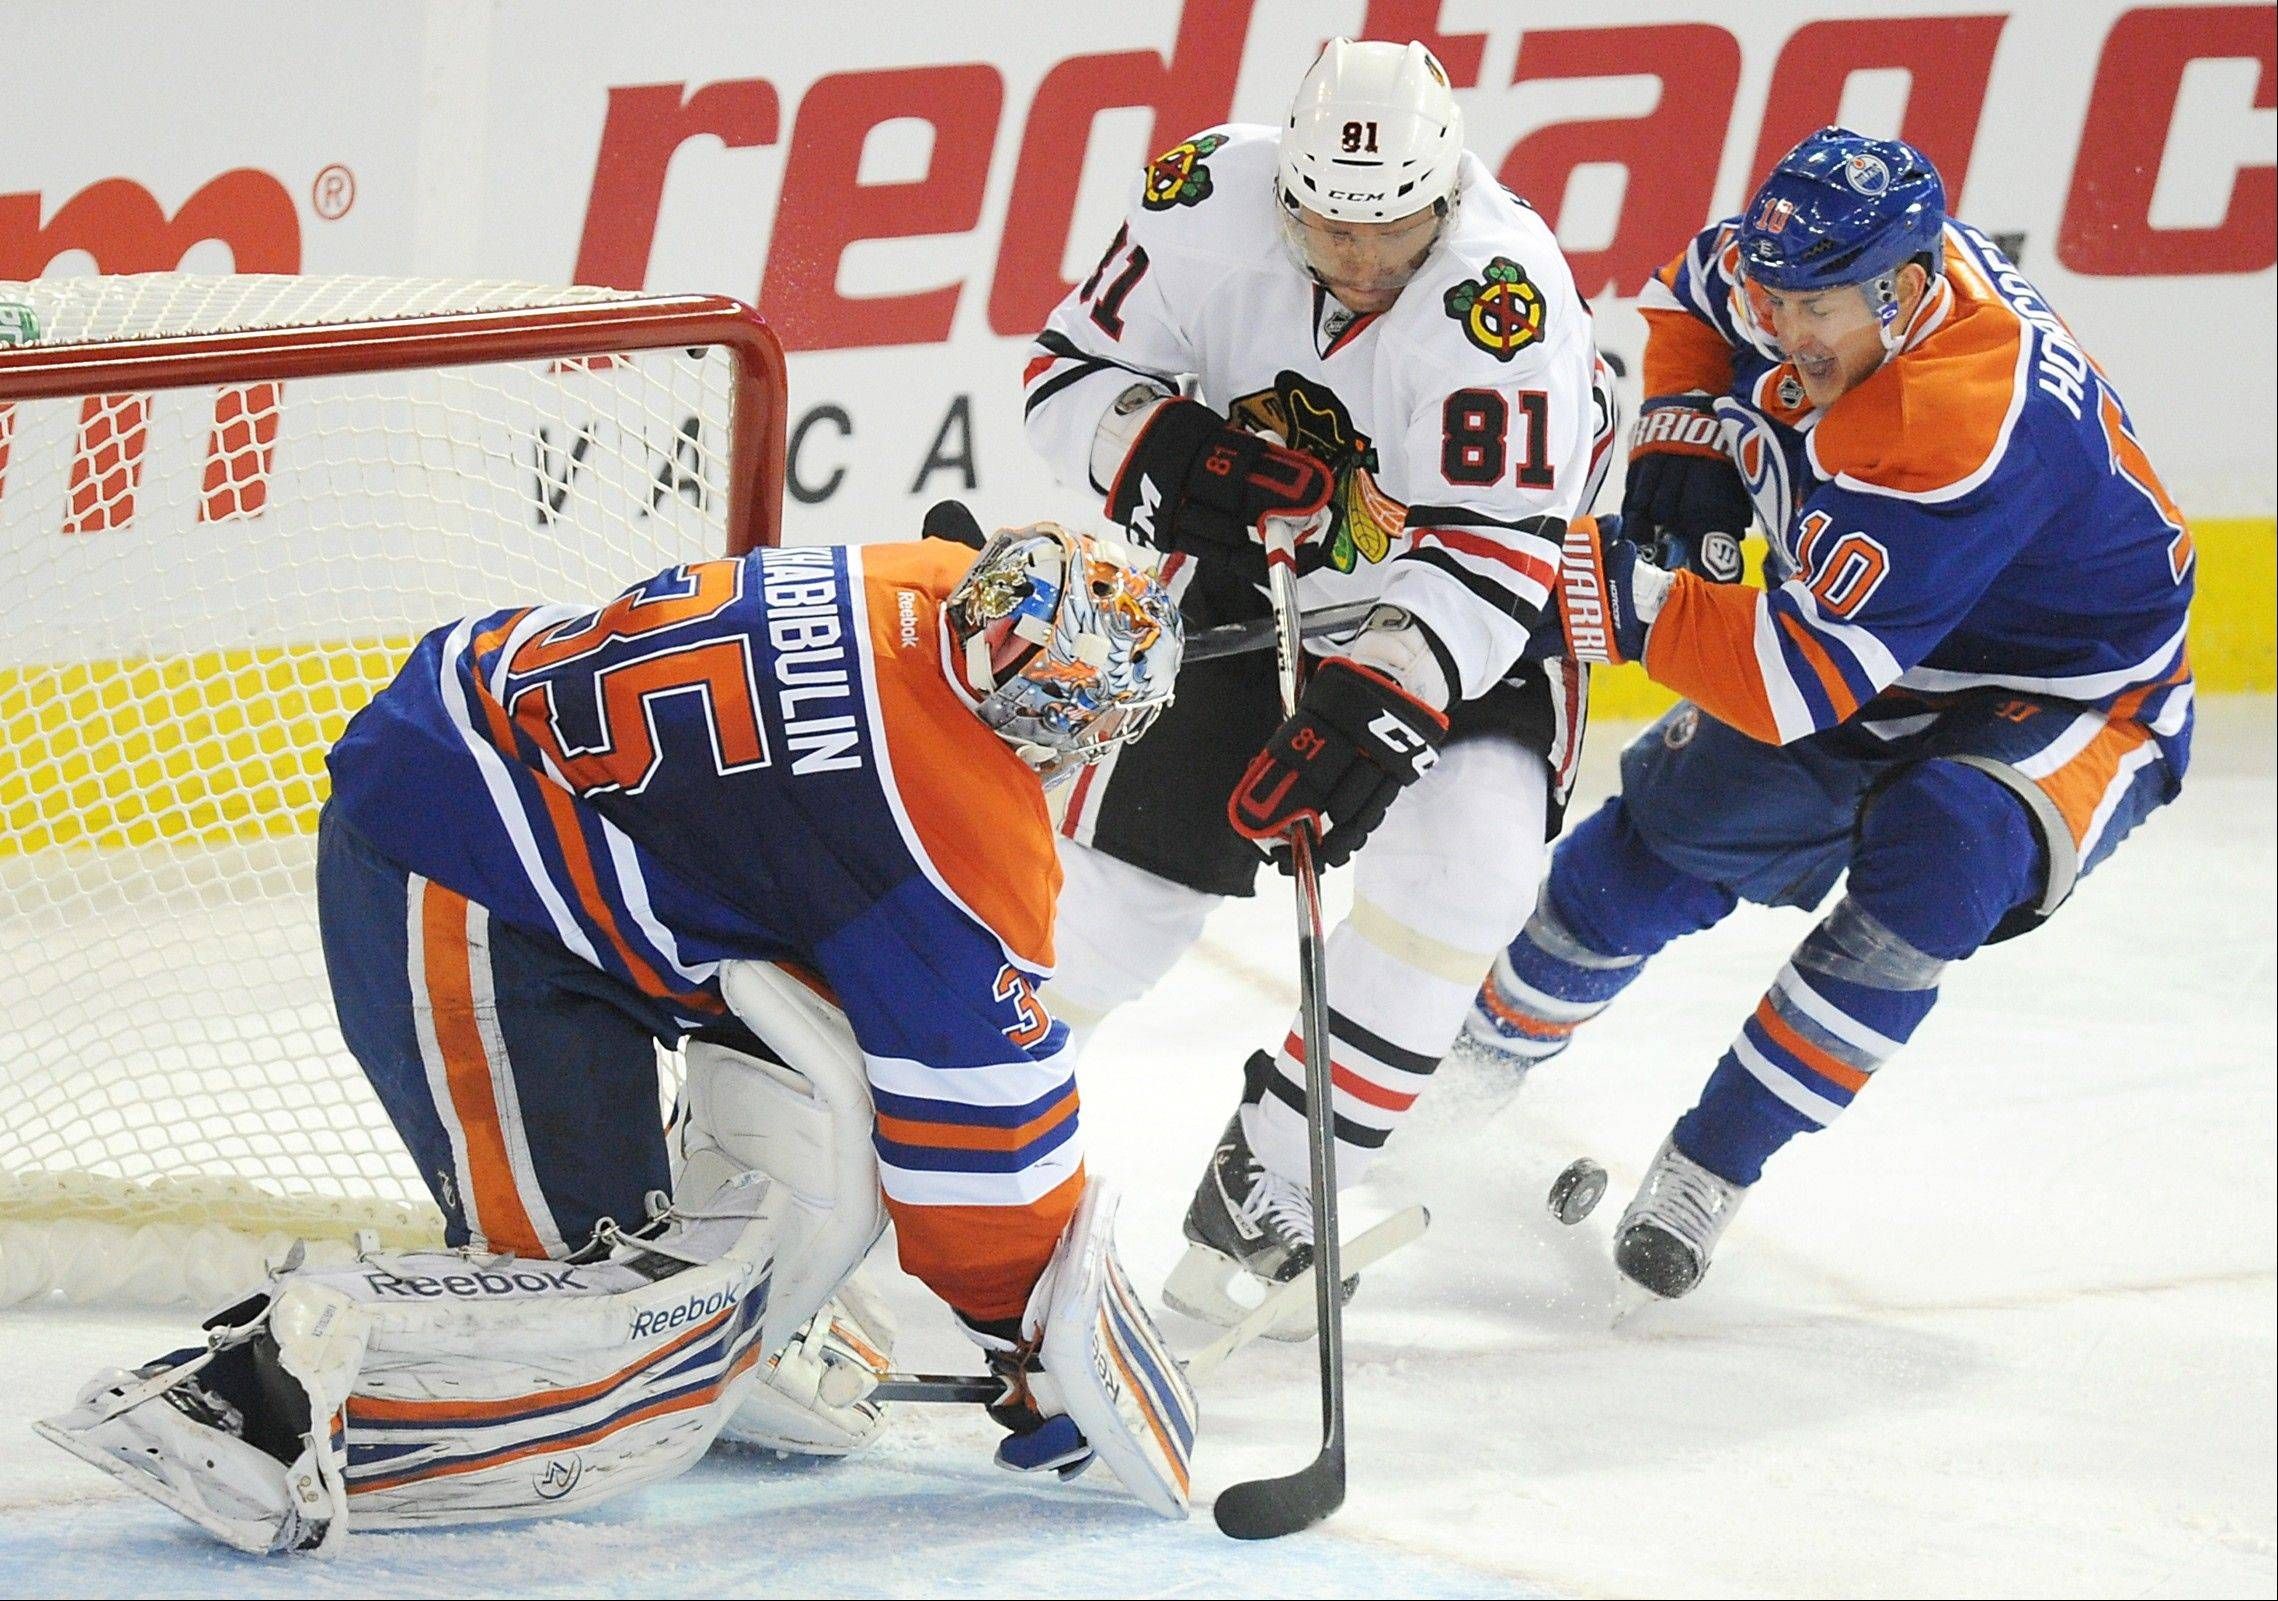 The Edmonton Oilers' Shawn Horcoff, right, defends goalie Nikolai Khabibulin, left, from the Chicago Blackhawks' Marian Hossa during first period NHL hockey action in Edmonton on Saturday, Nov. 19, 2011.